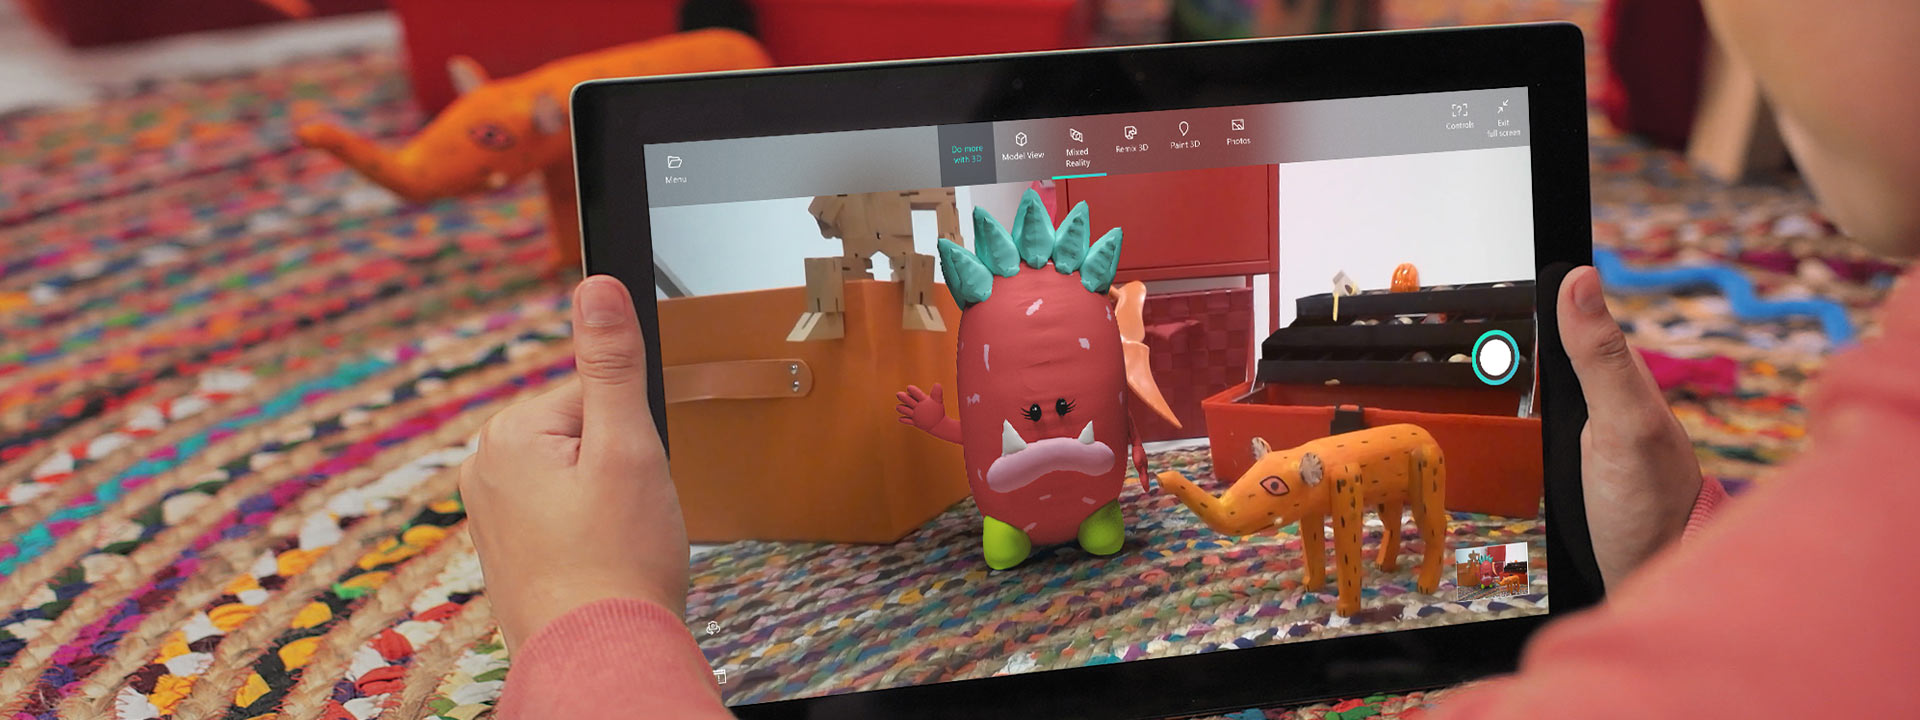 Tablet showing a 3d creation in Mixed reality Viewer